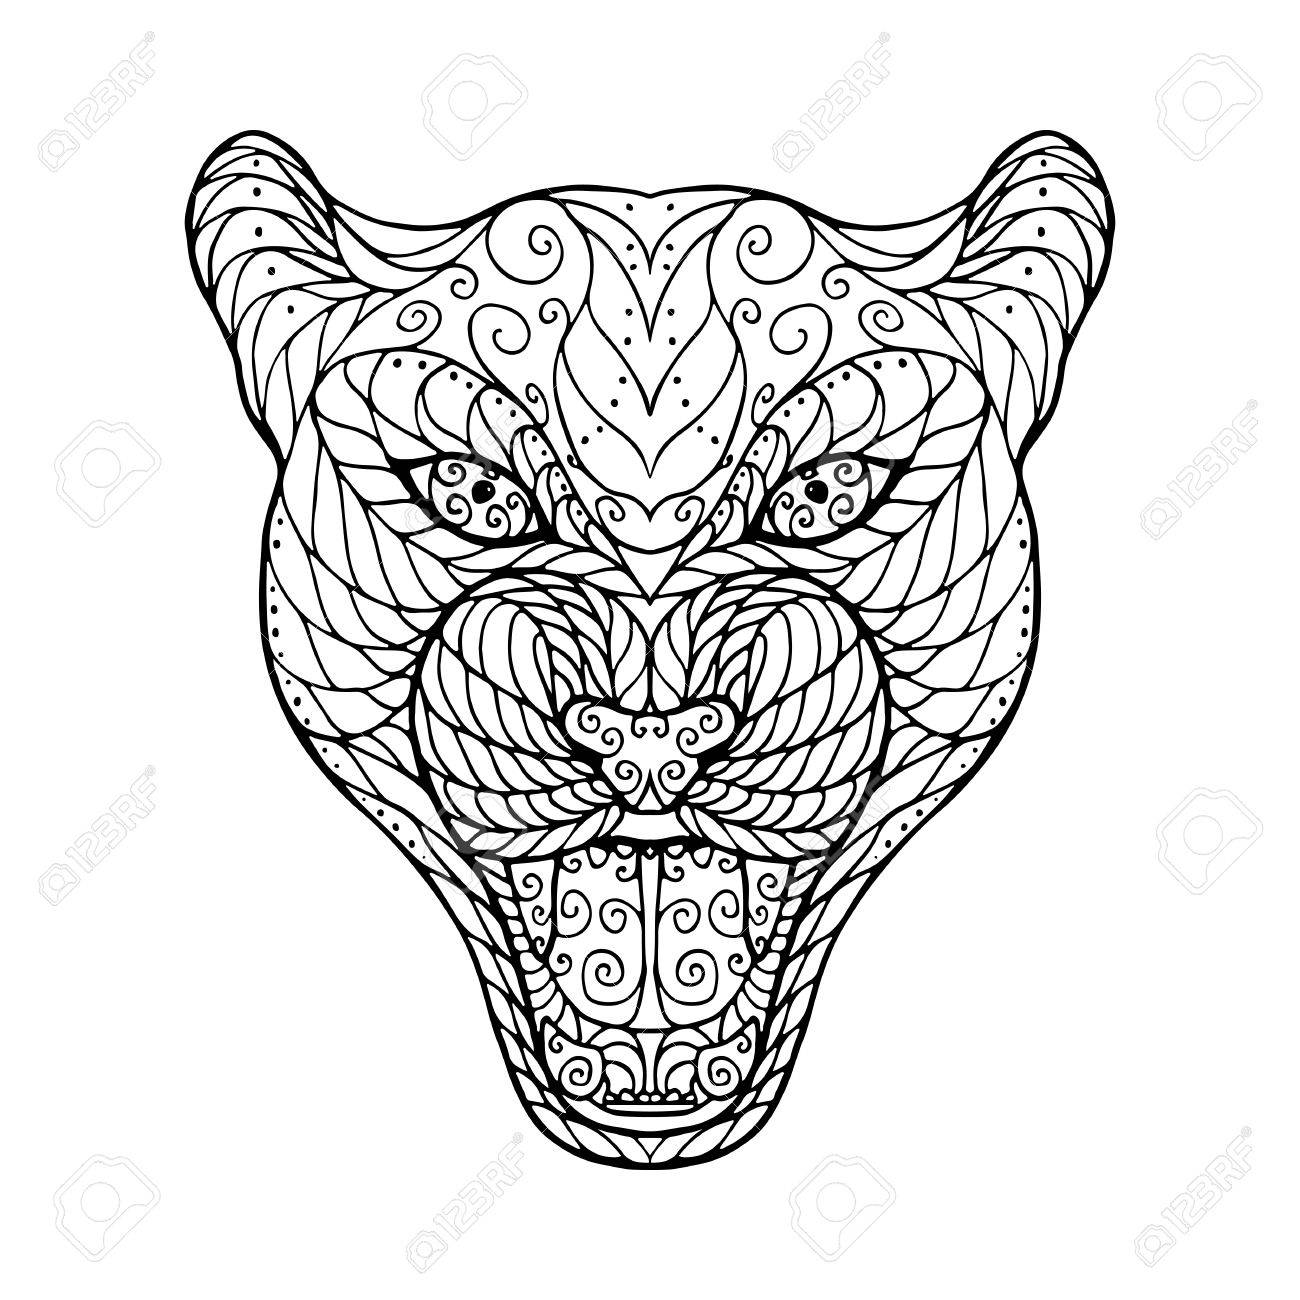 vector zen tangle head of jaguar for adult anti stress coloring page with high details isolated on white background hand drawn illustration - Zen Coloring Pages